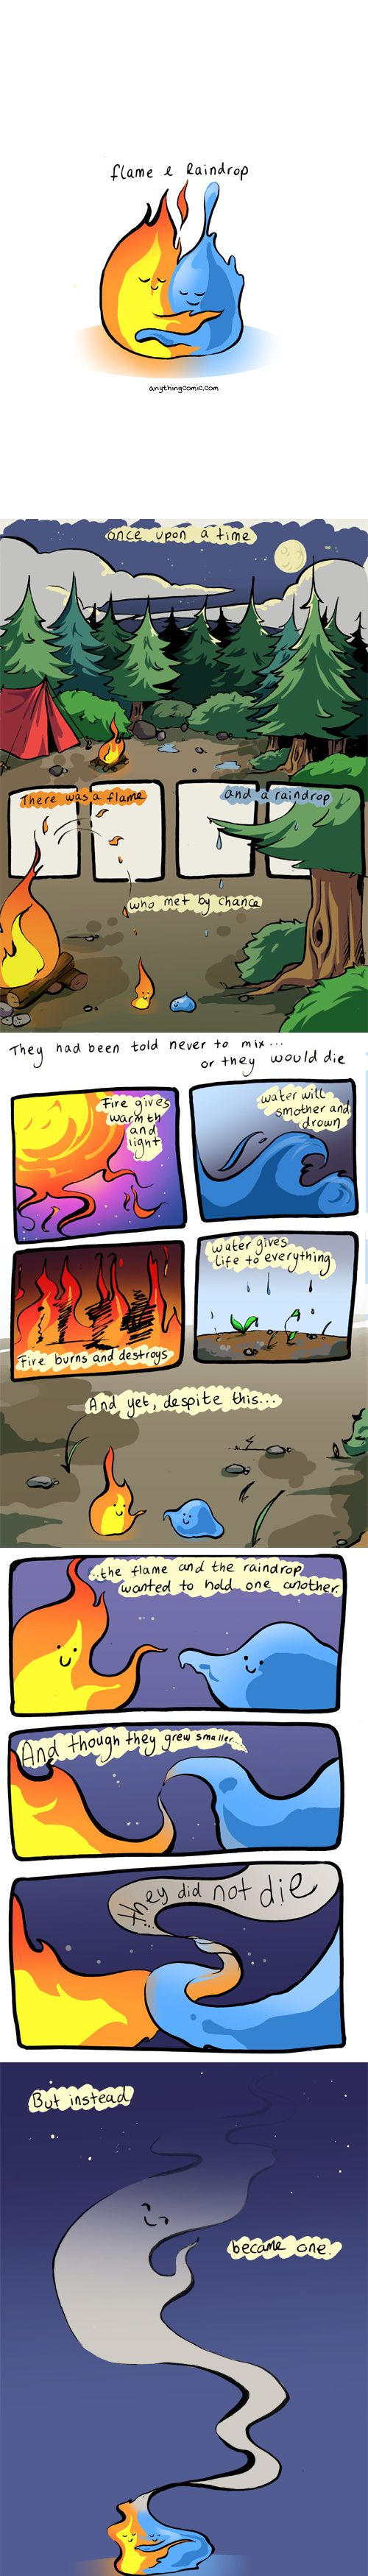 Anything about nothing :: Comics - The Flame and the Raindrop